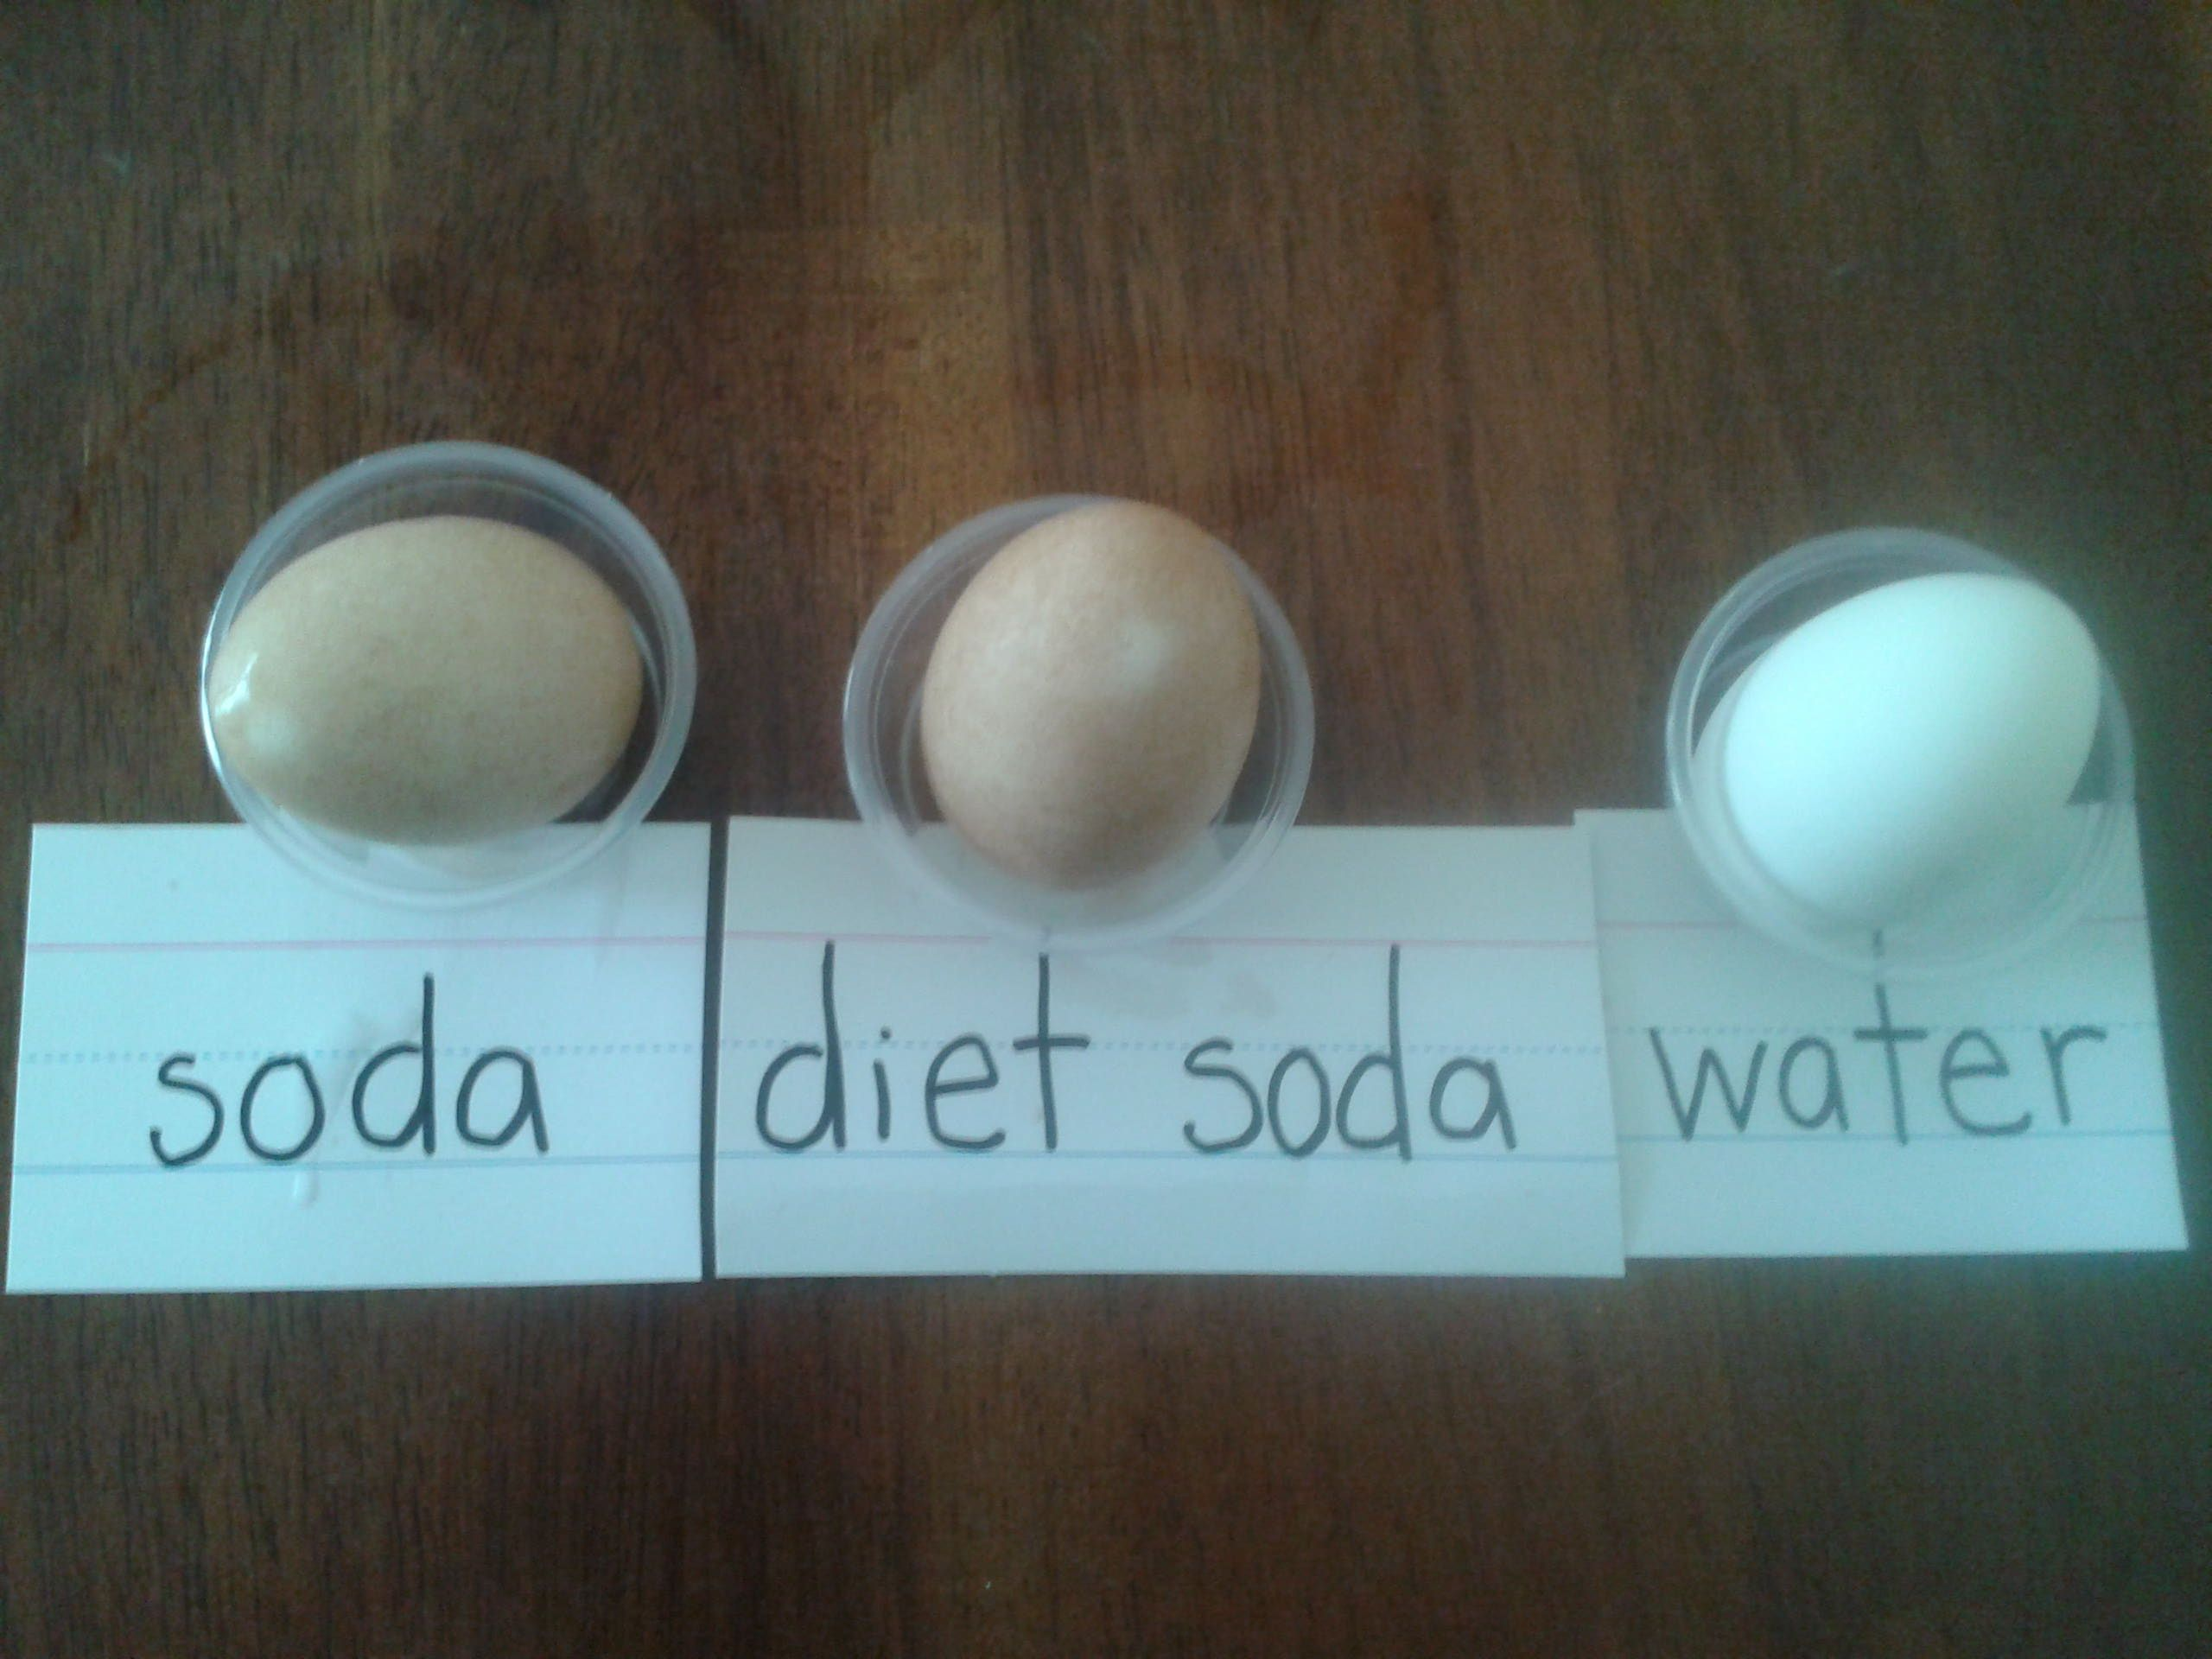 Egg And Soda What Does Soda Do To Your Teeth